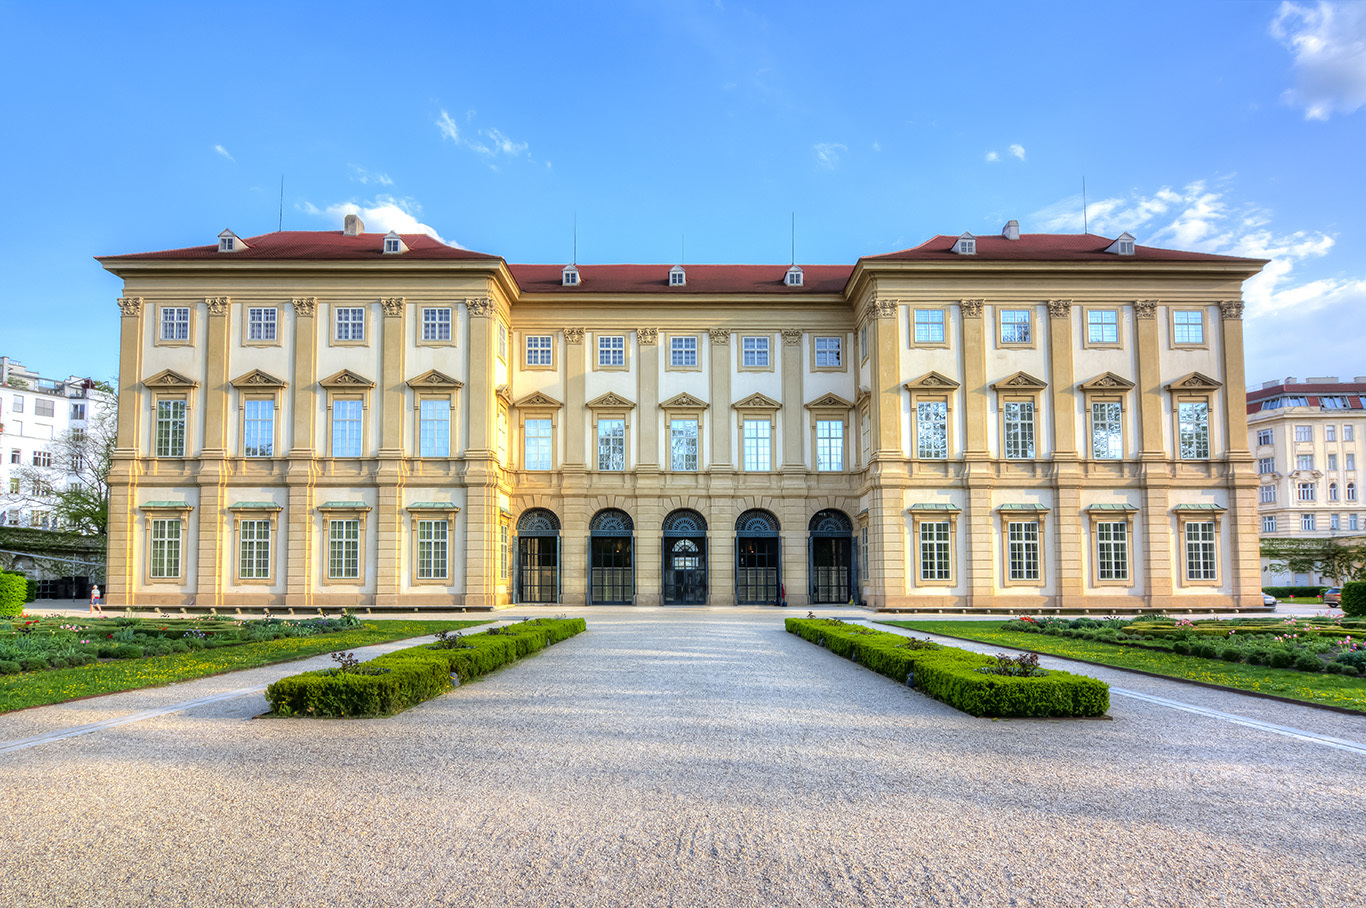 4) Vienna's Liechtenstein City Palace